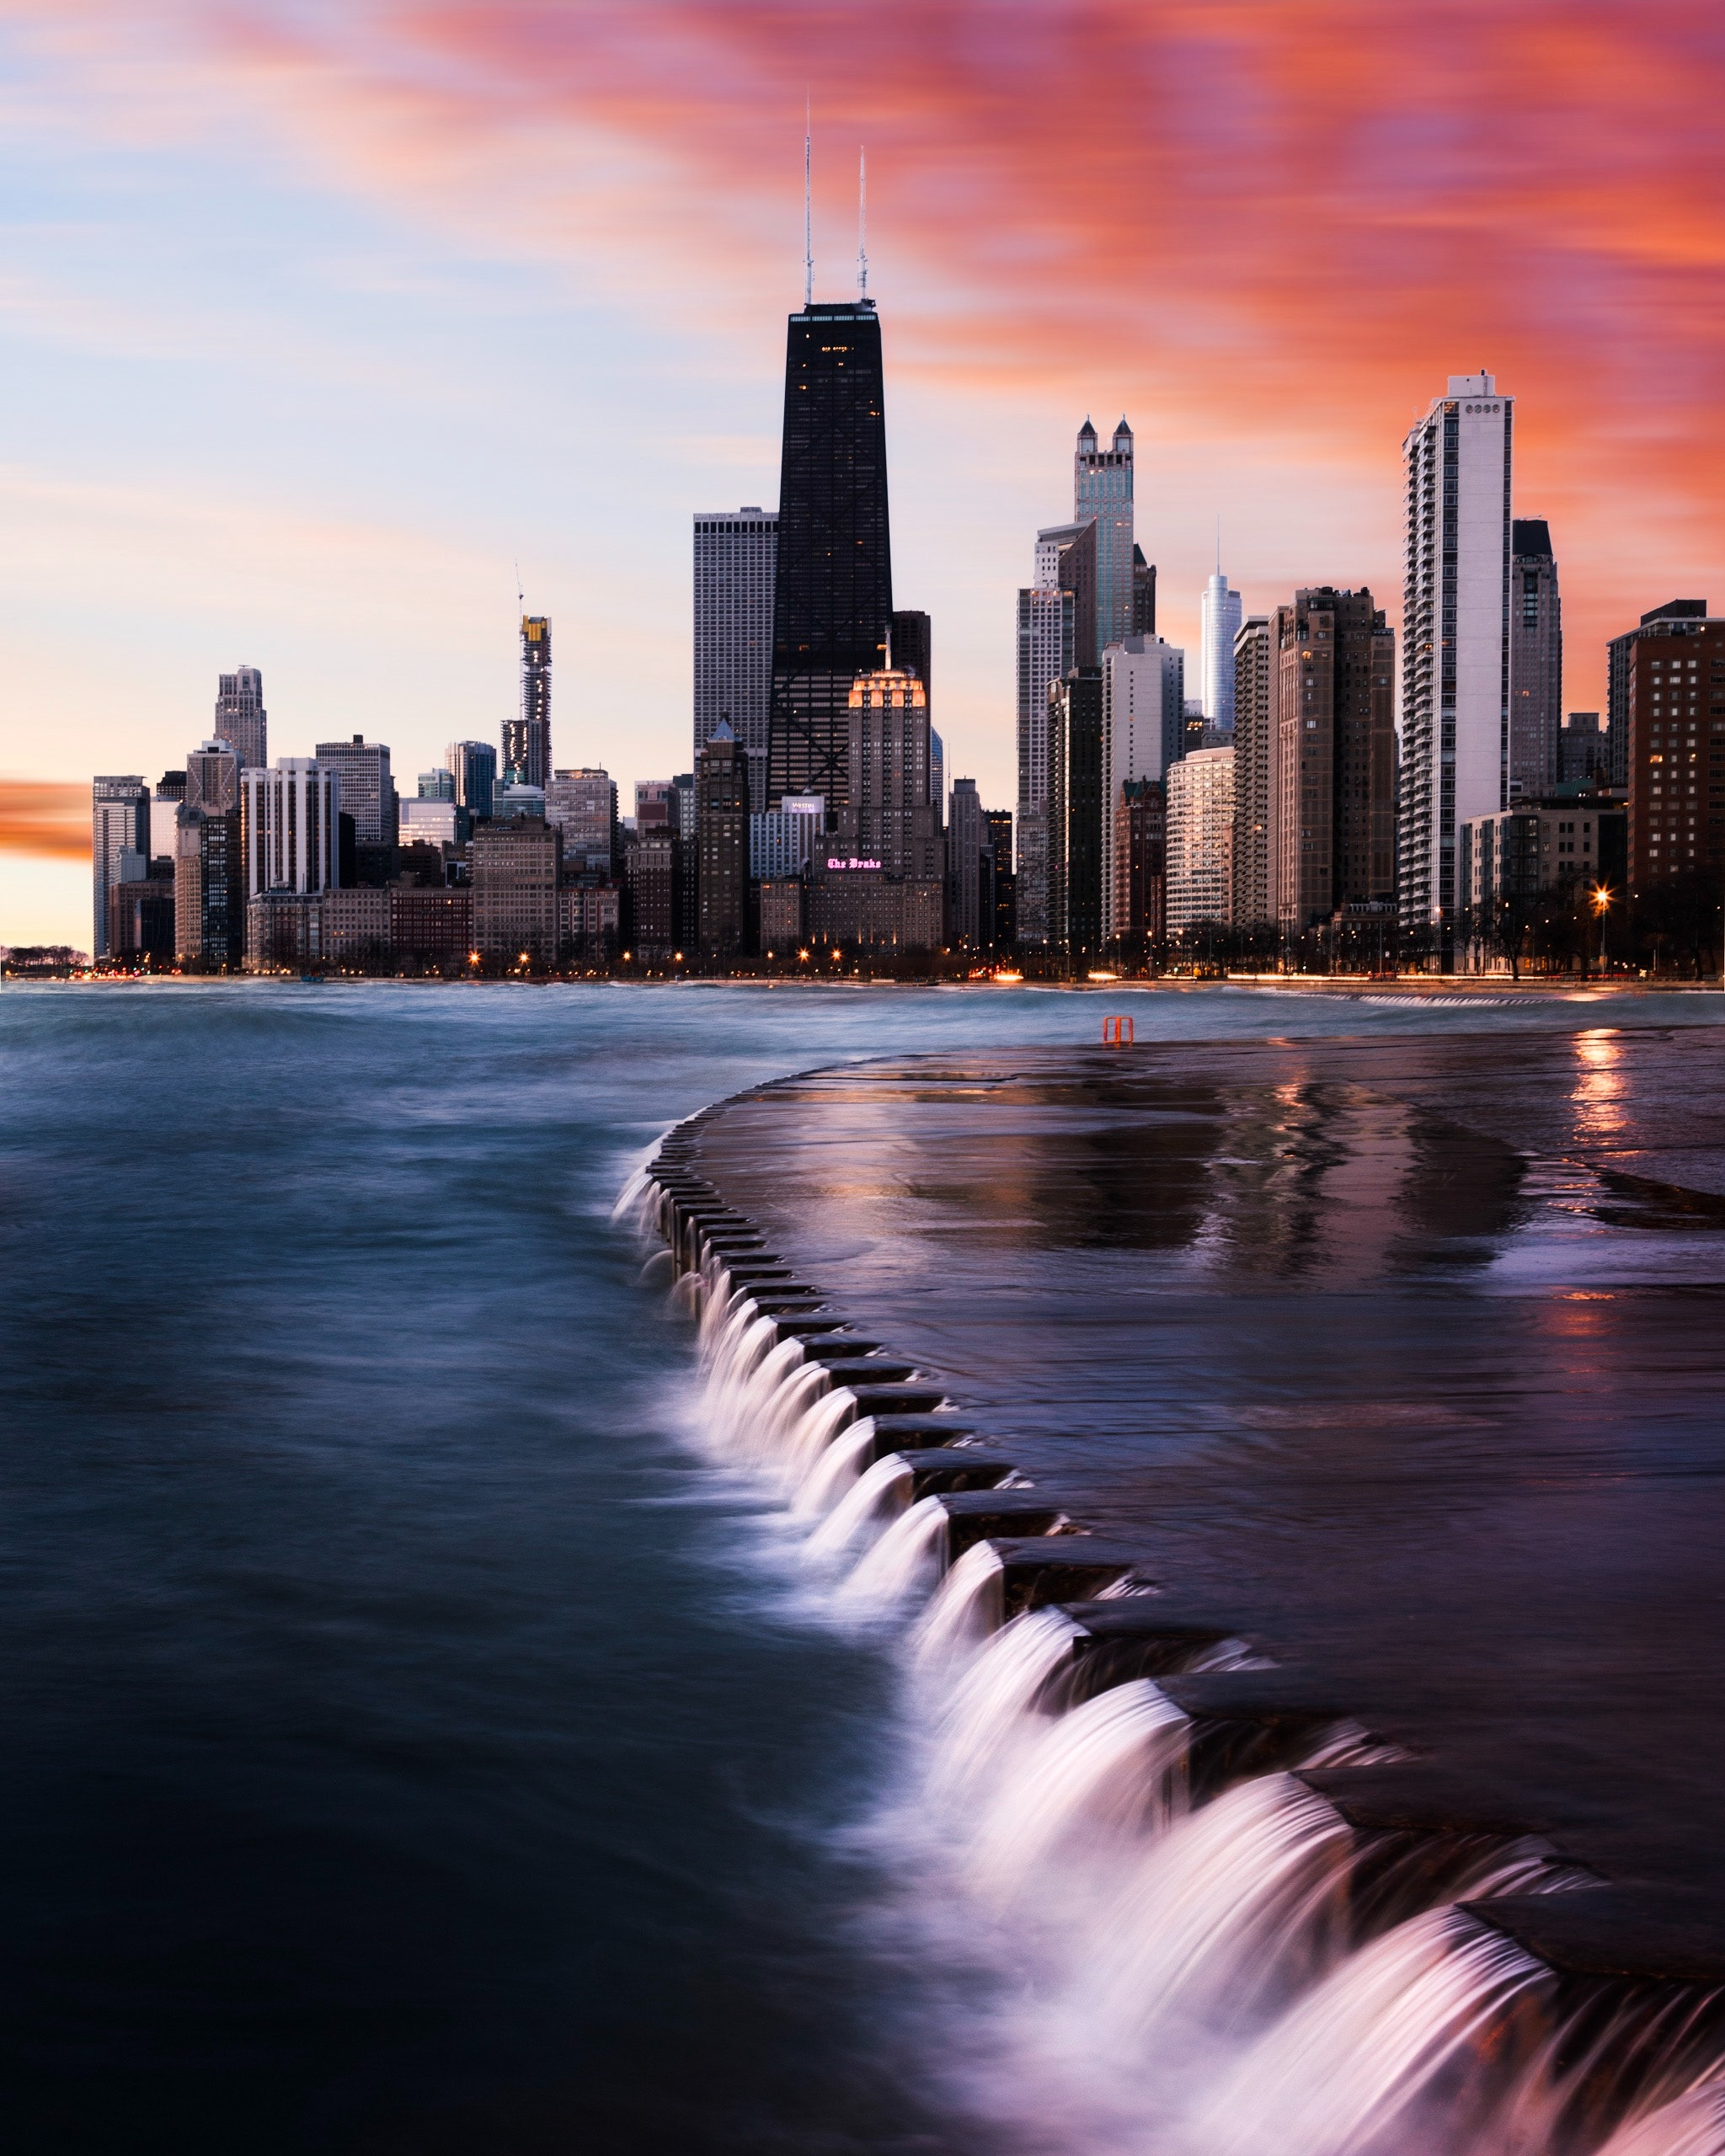 Time-lapse photography of a river near a big city